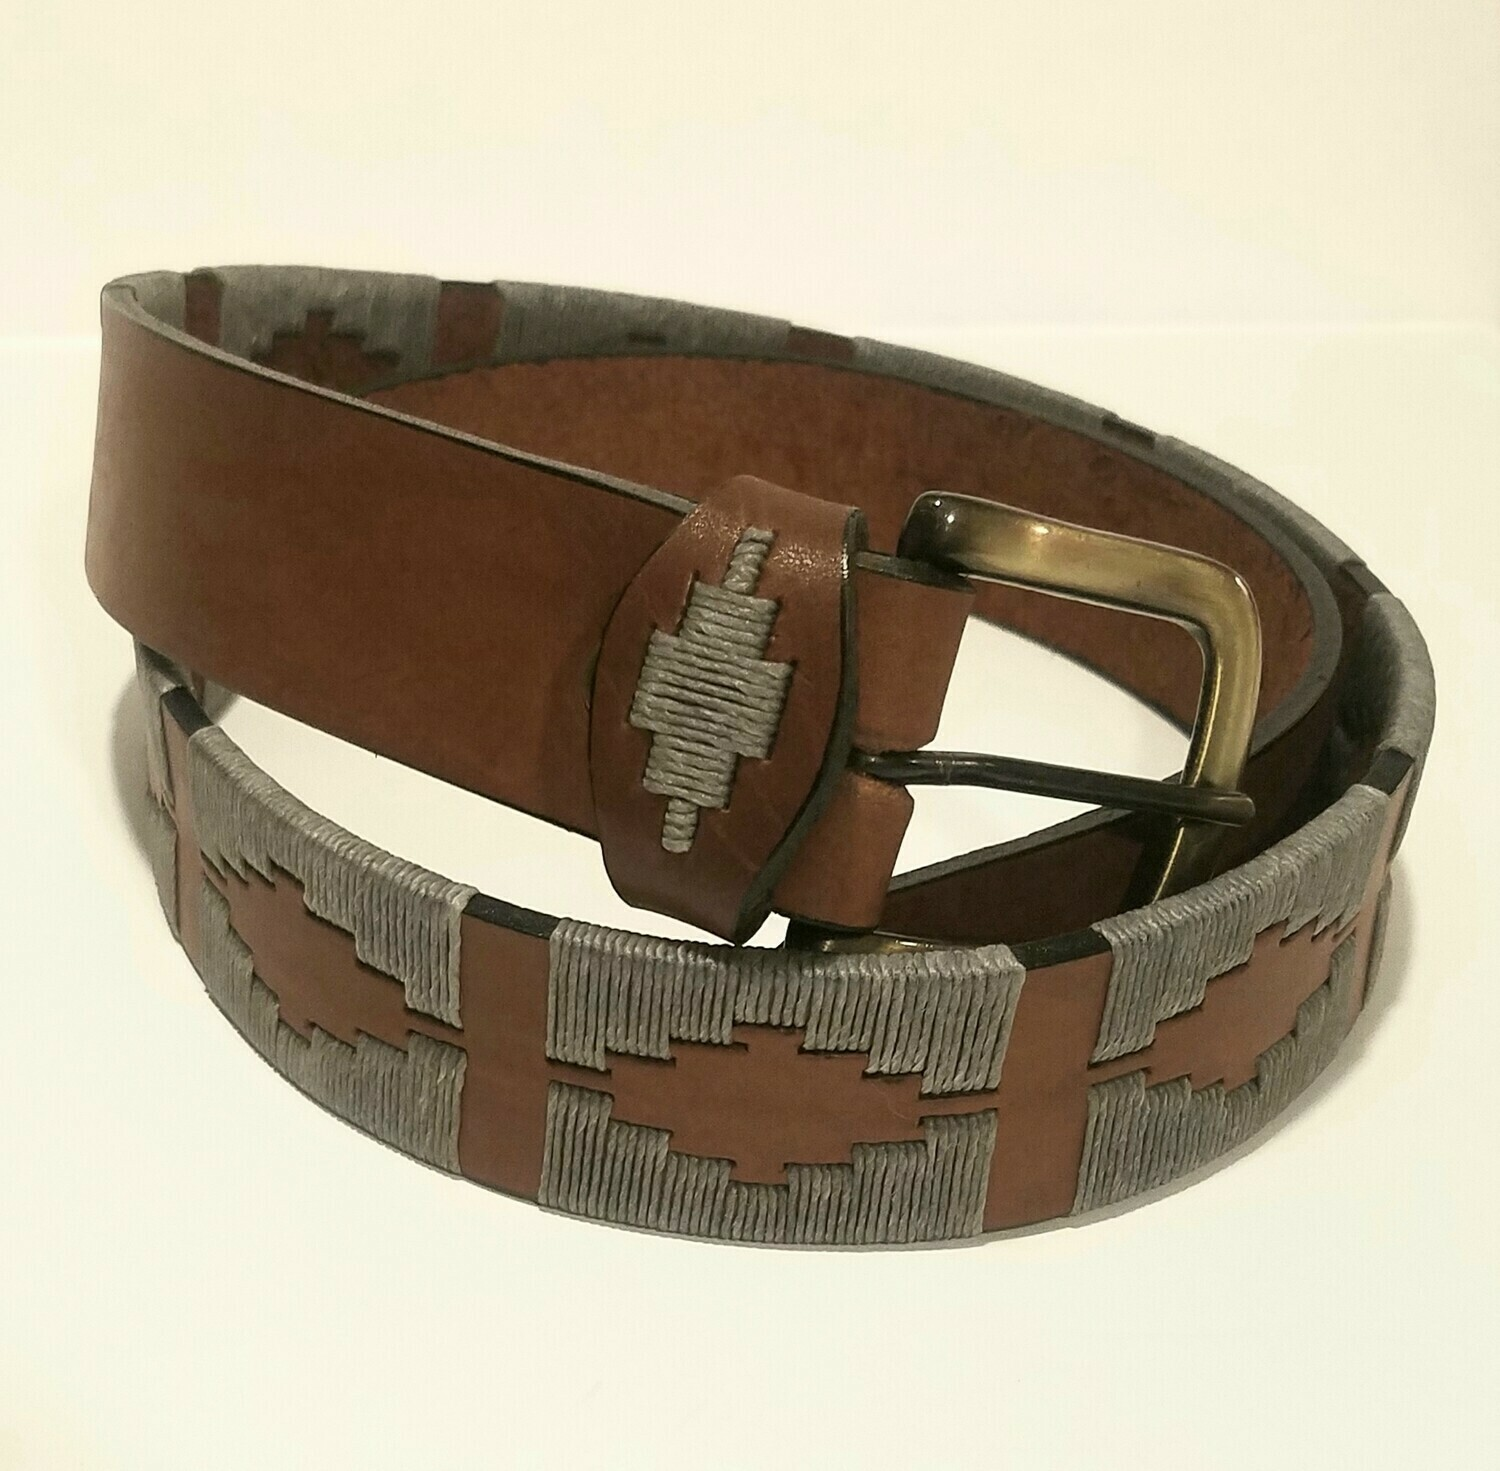 "Leather stitched Polo Belt Gris 110CM (40-42"")"